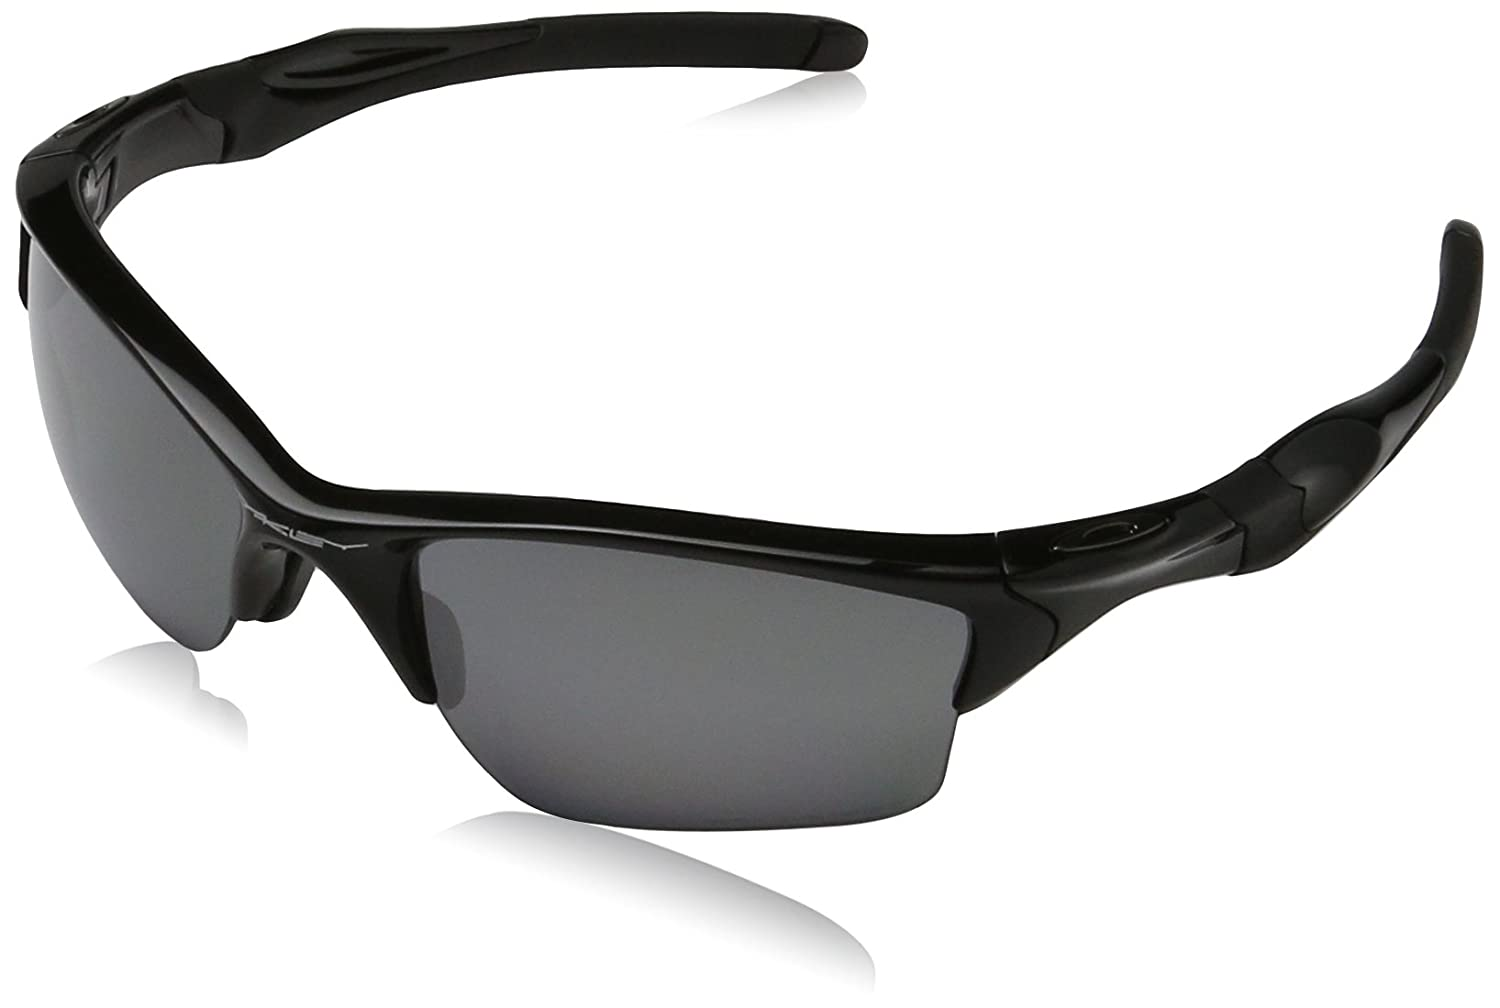 ad4a72bfae Amazon.com  Oakley Mens Half Jacket 2.0 XL OO9154-05 Polarized Sunglasses  58mm